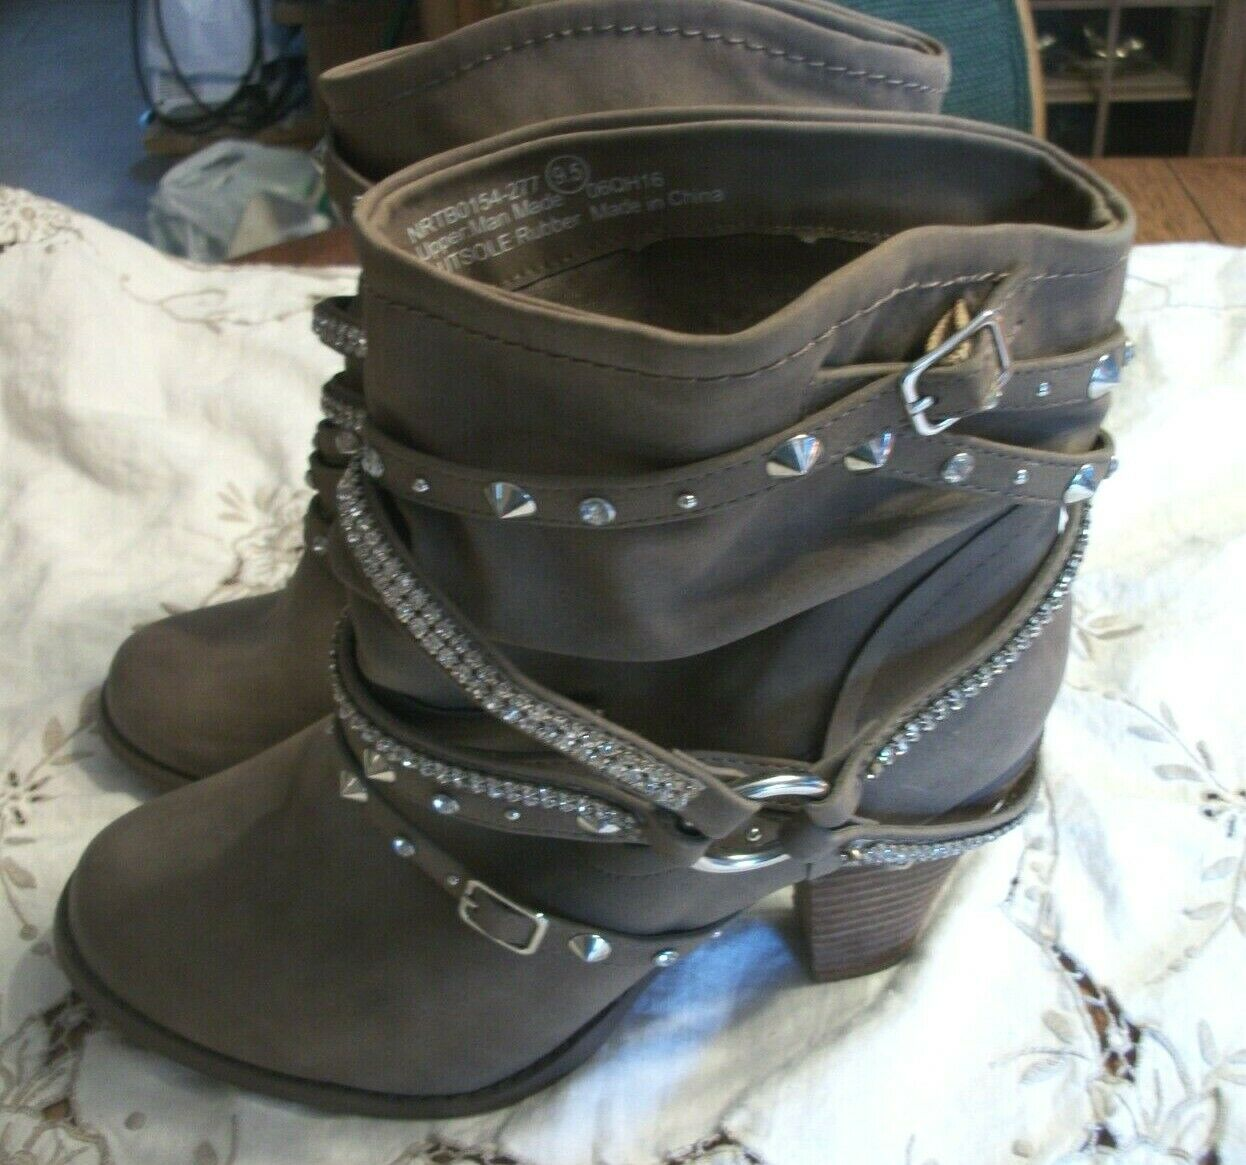 Not Rated Taupe Size 91 2 Dress Boots with Rhinestones and Stud Design